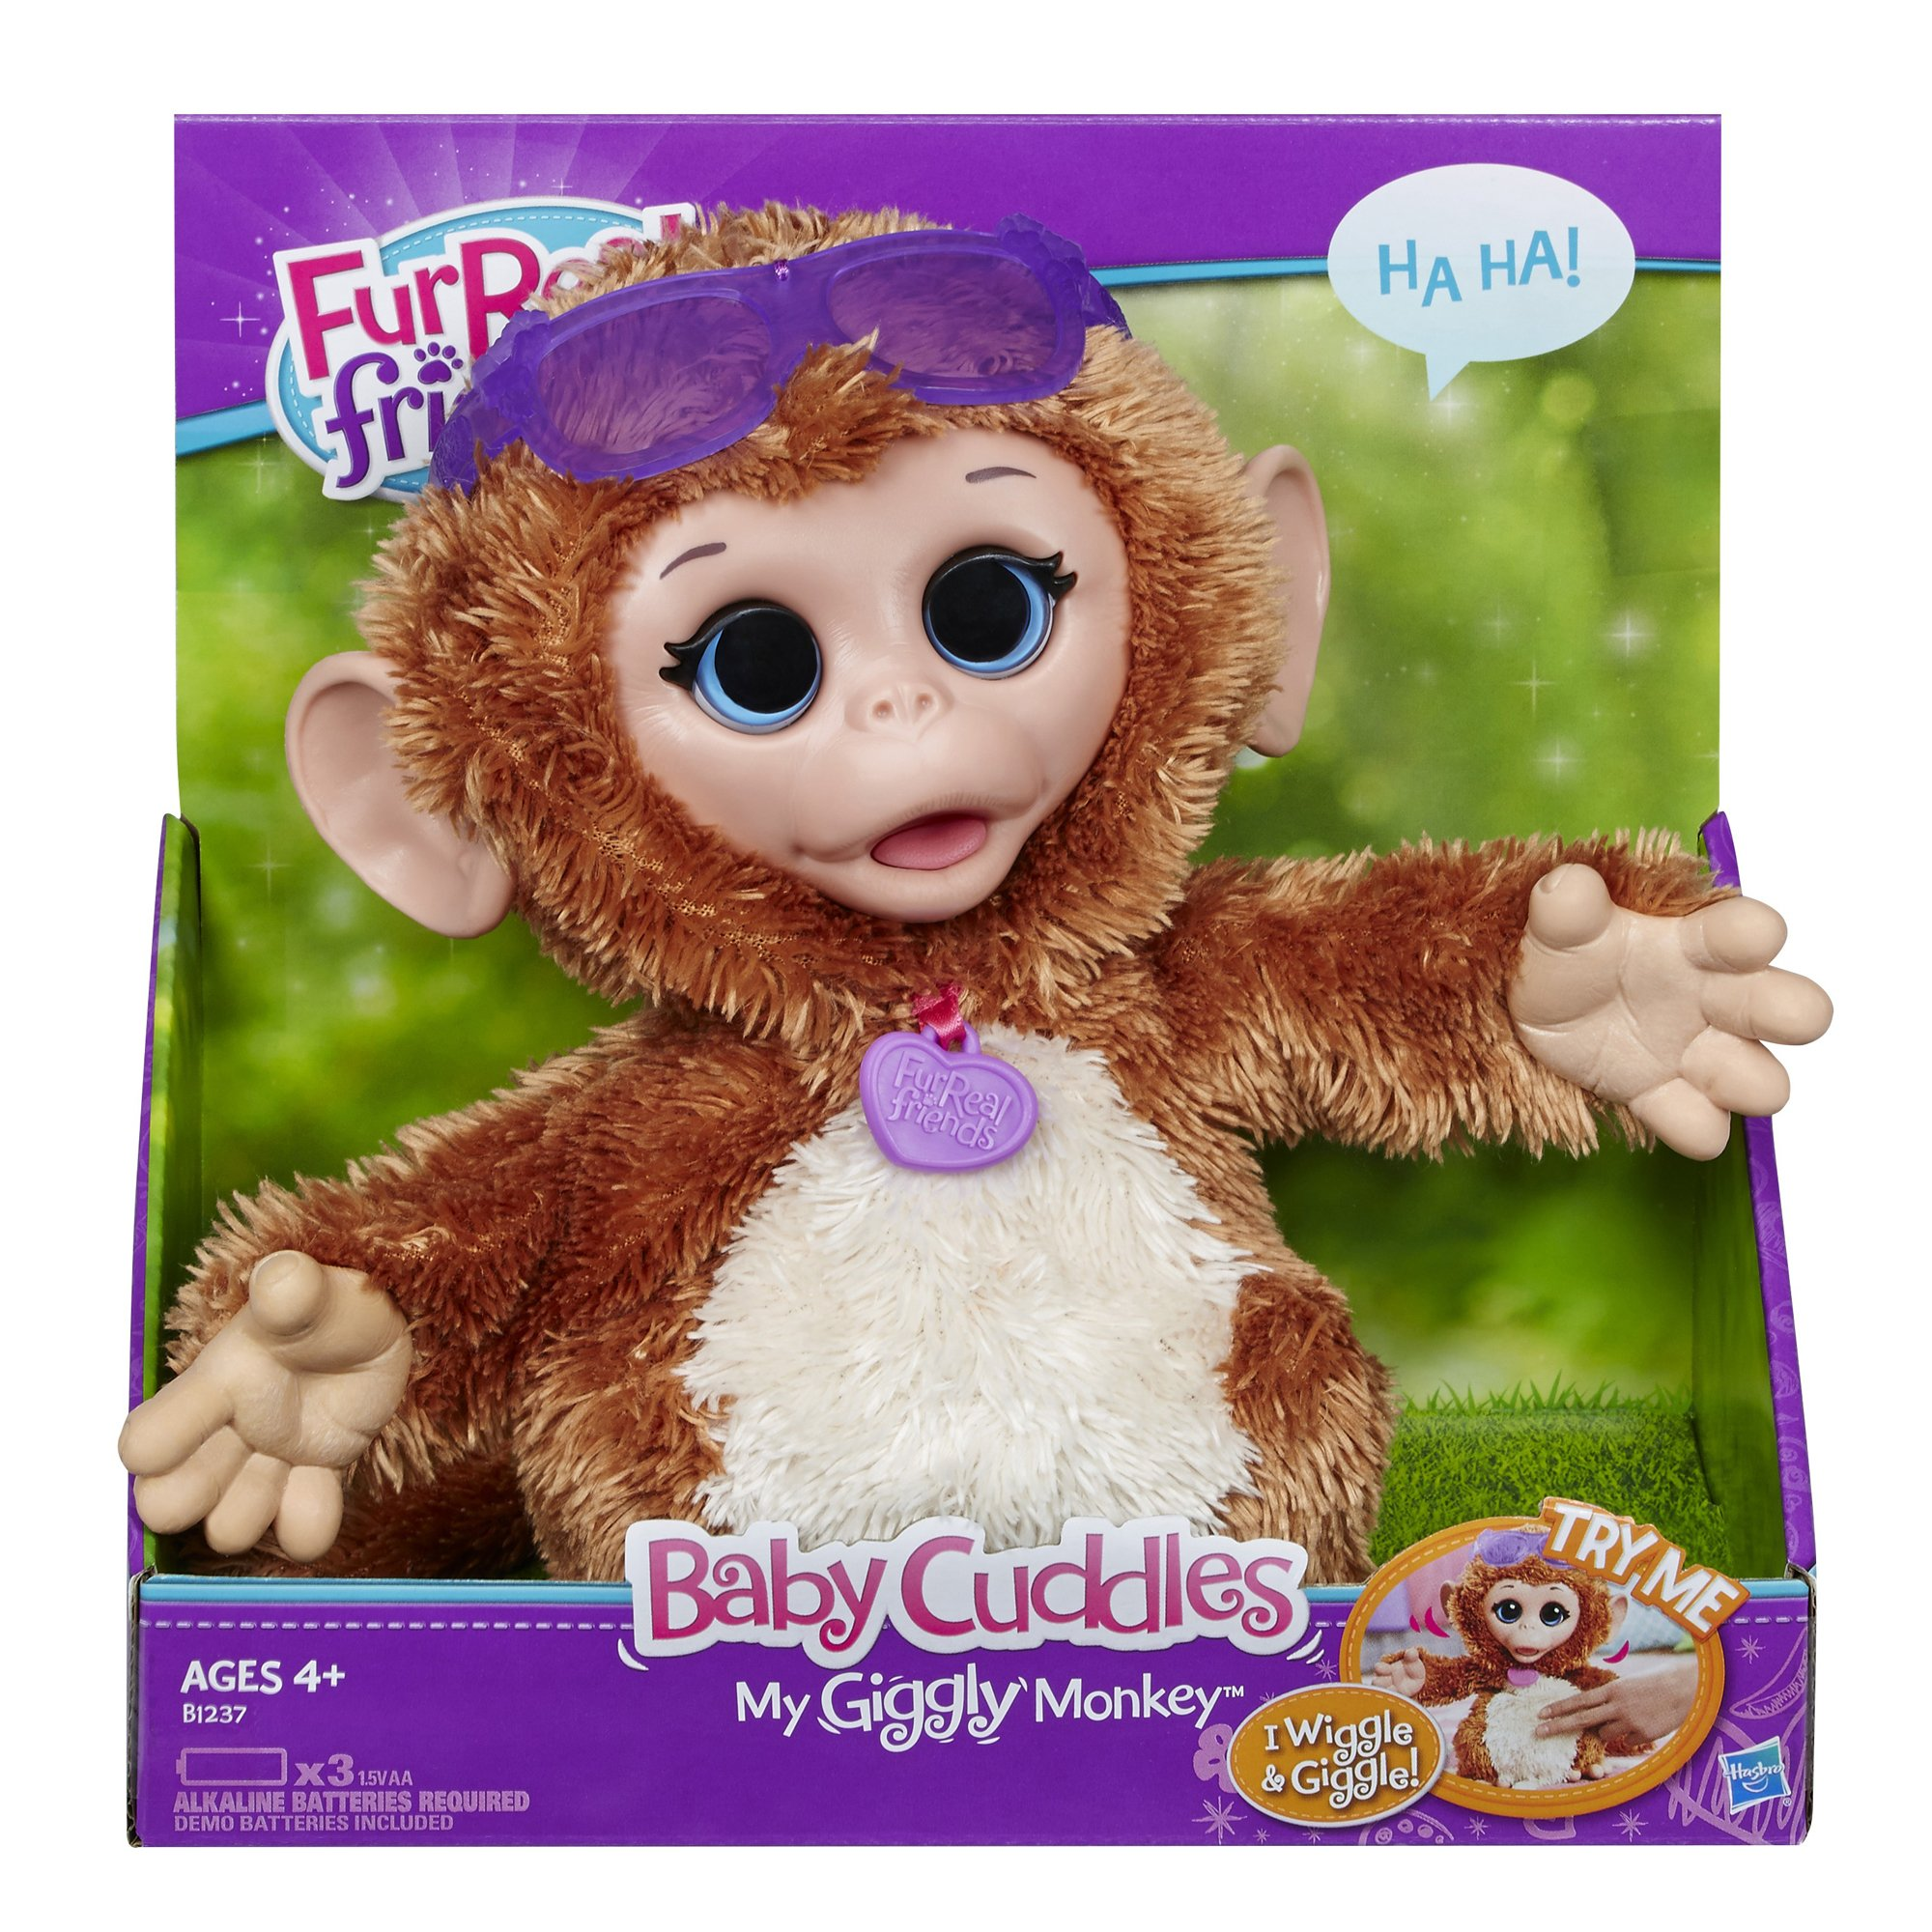 FurReal Friends Baby Cuddles My Giggly Monkey Pet Plush by FurReal (Image #2)